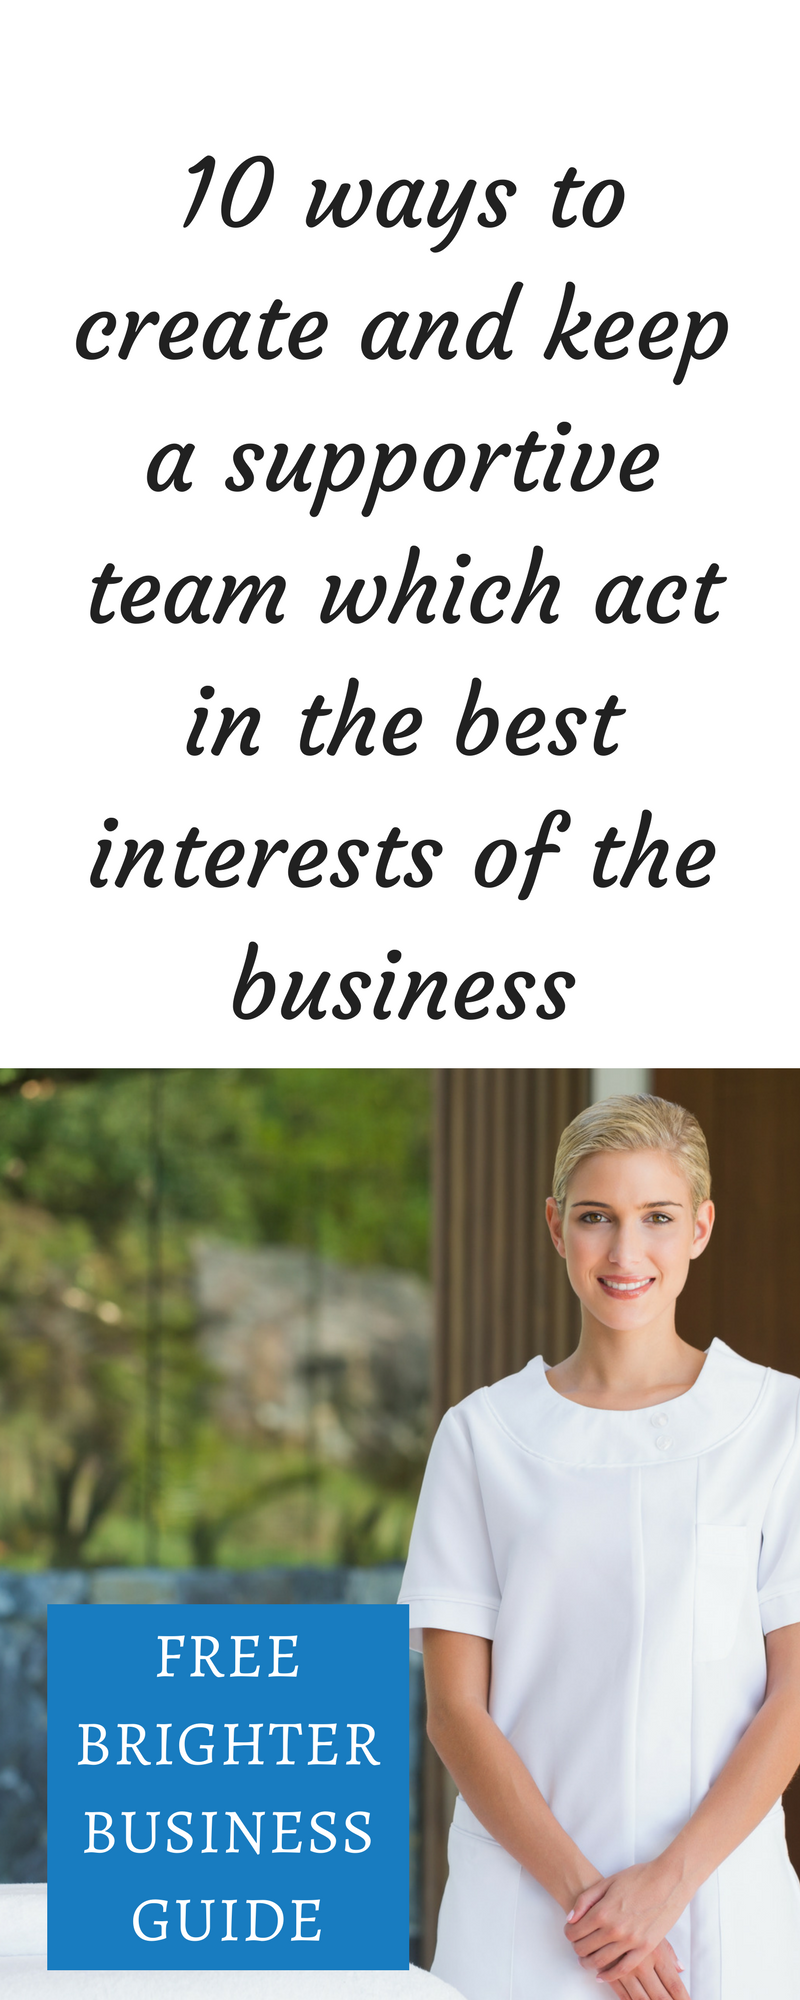 10 Ways to create and keep a team that's on your side and acting in the best interests of the business.png